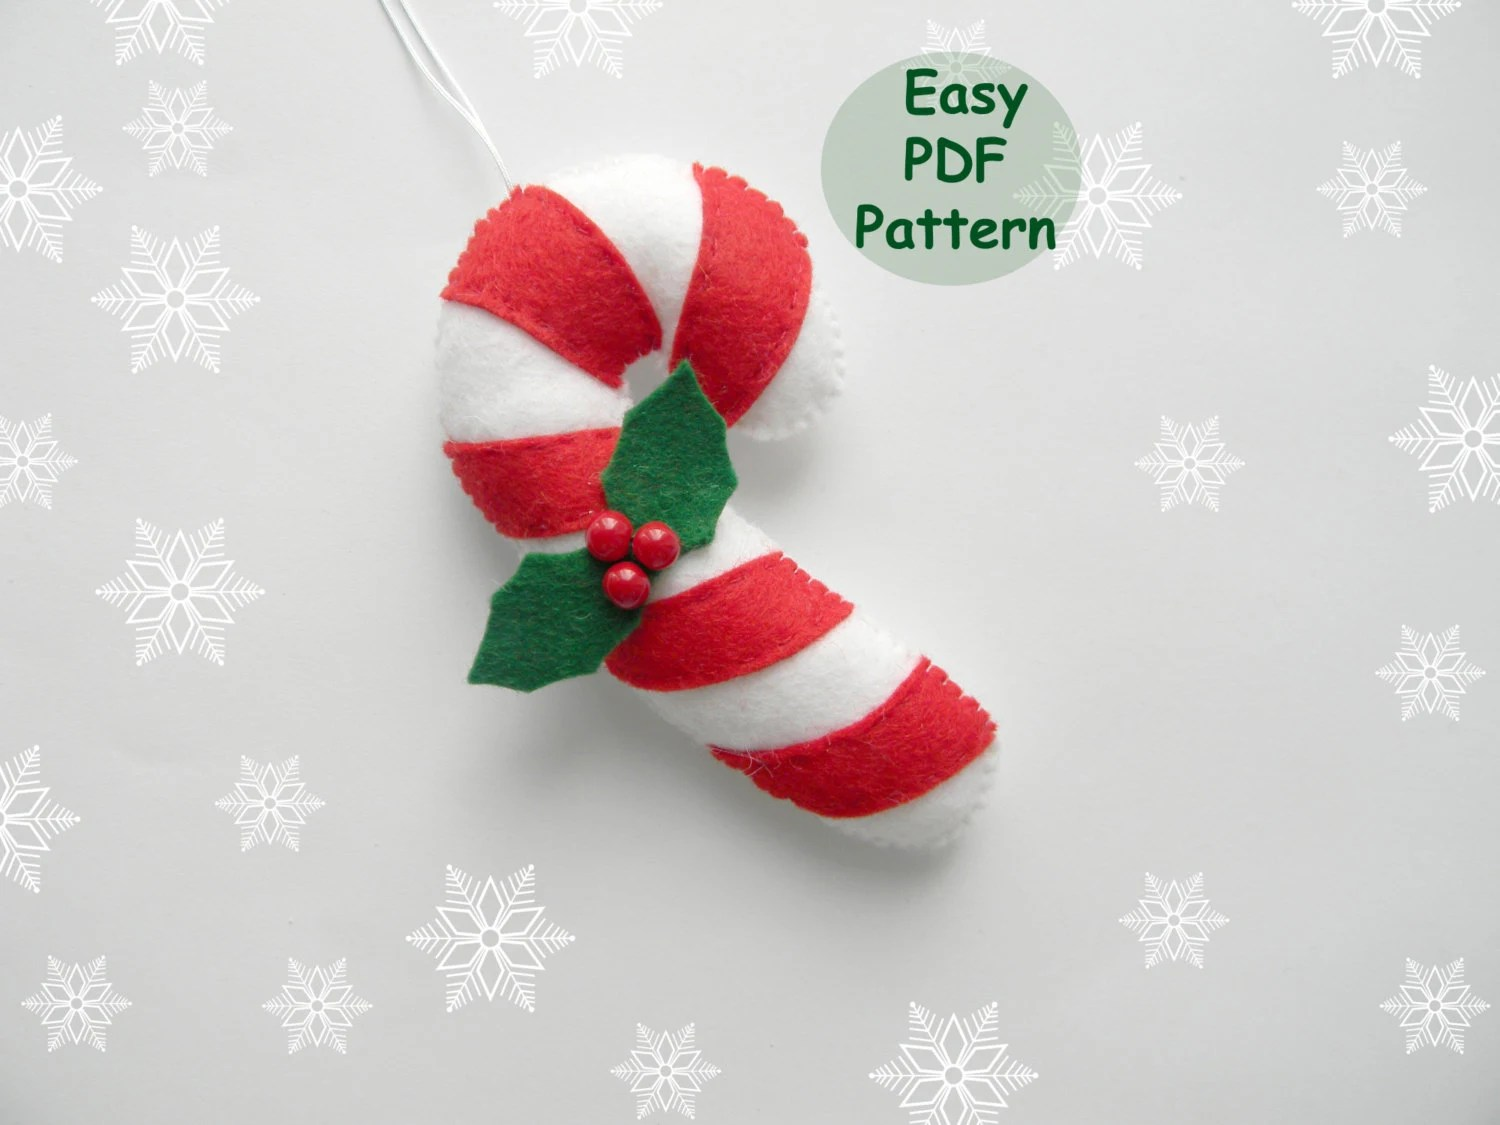 Pattern Candy Cane Easy Christmas Ornaments Pattern